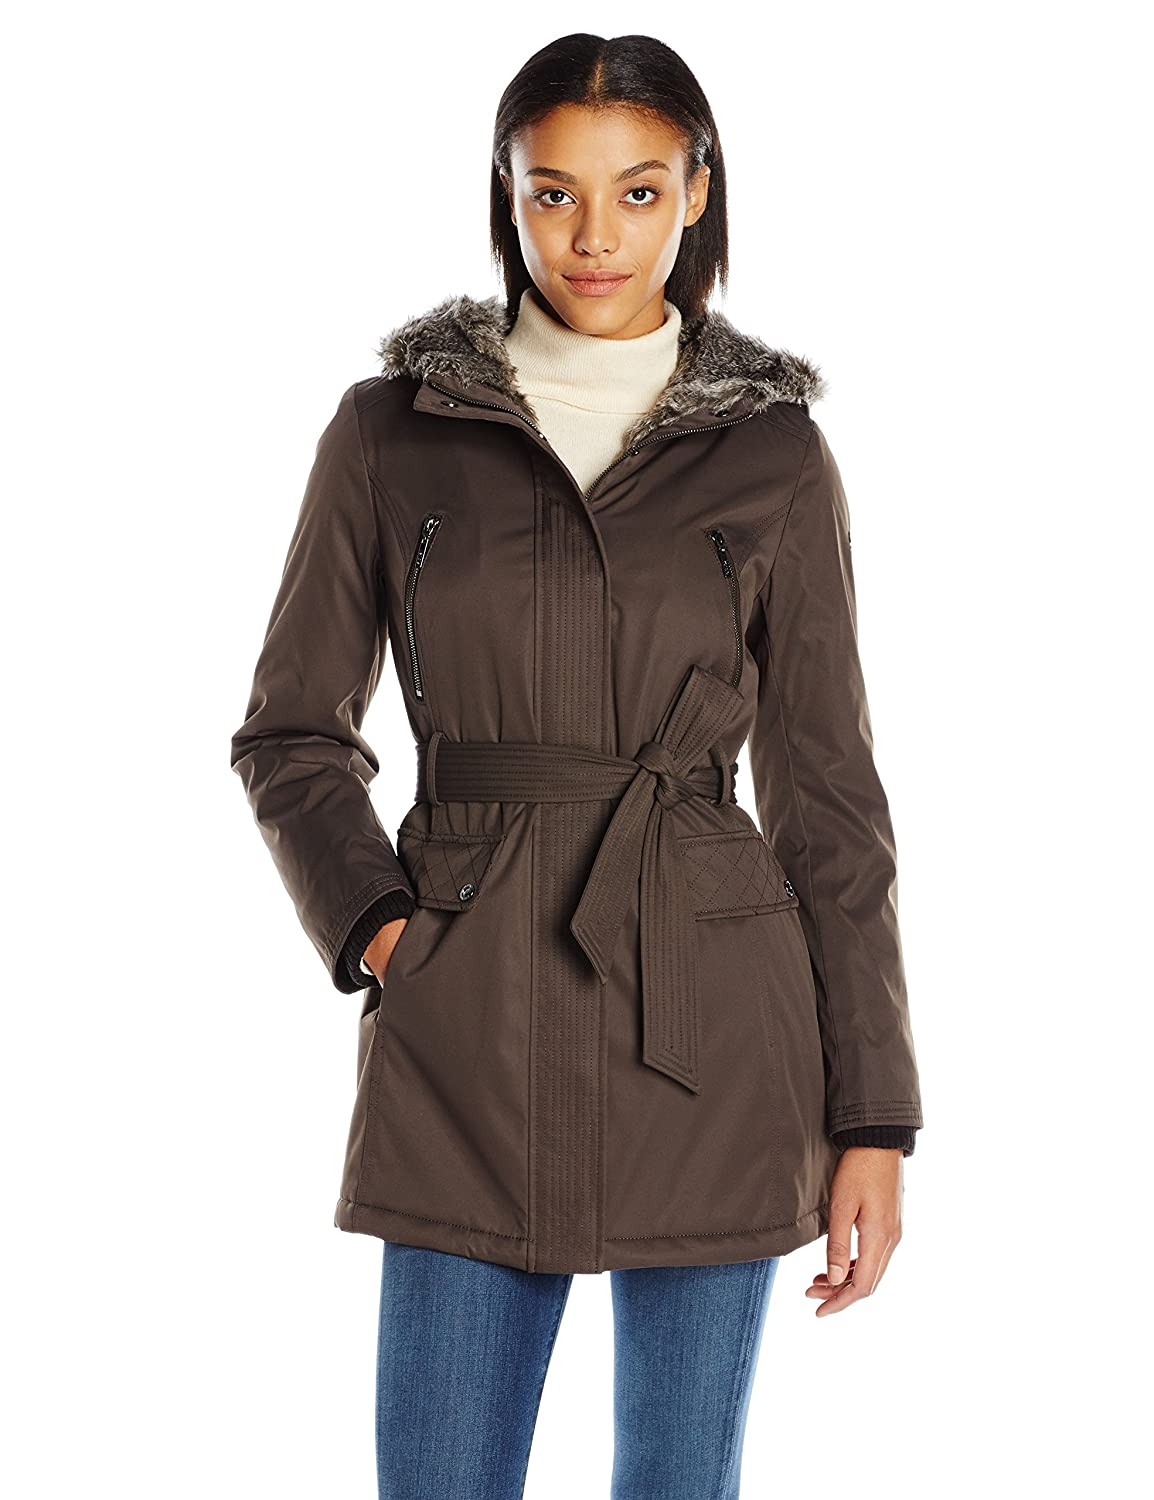 Kensie Women's Polyester-Filled Belted Parka Kensie Women's Outerwear J9601